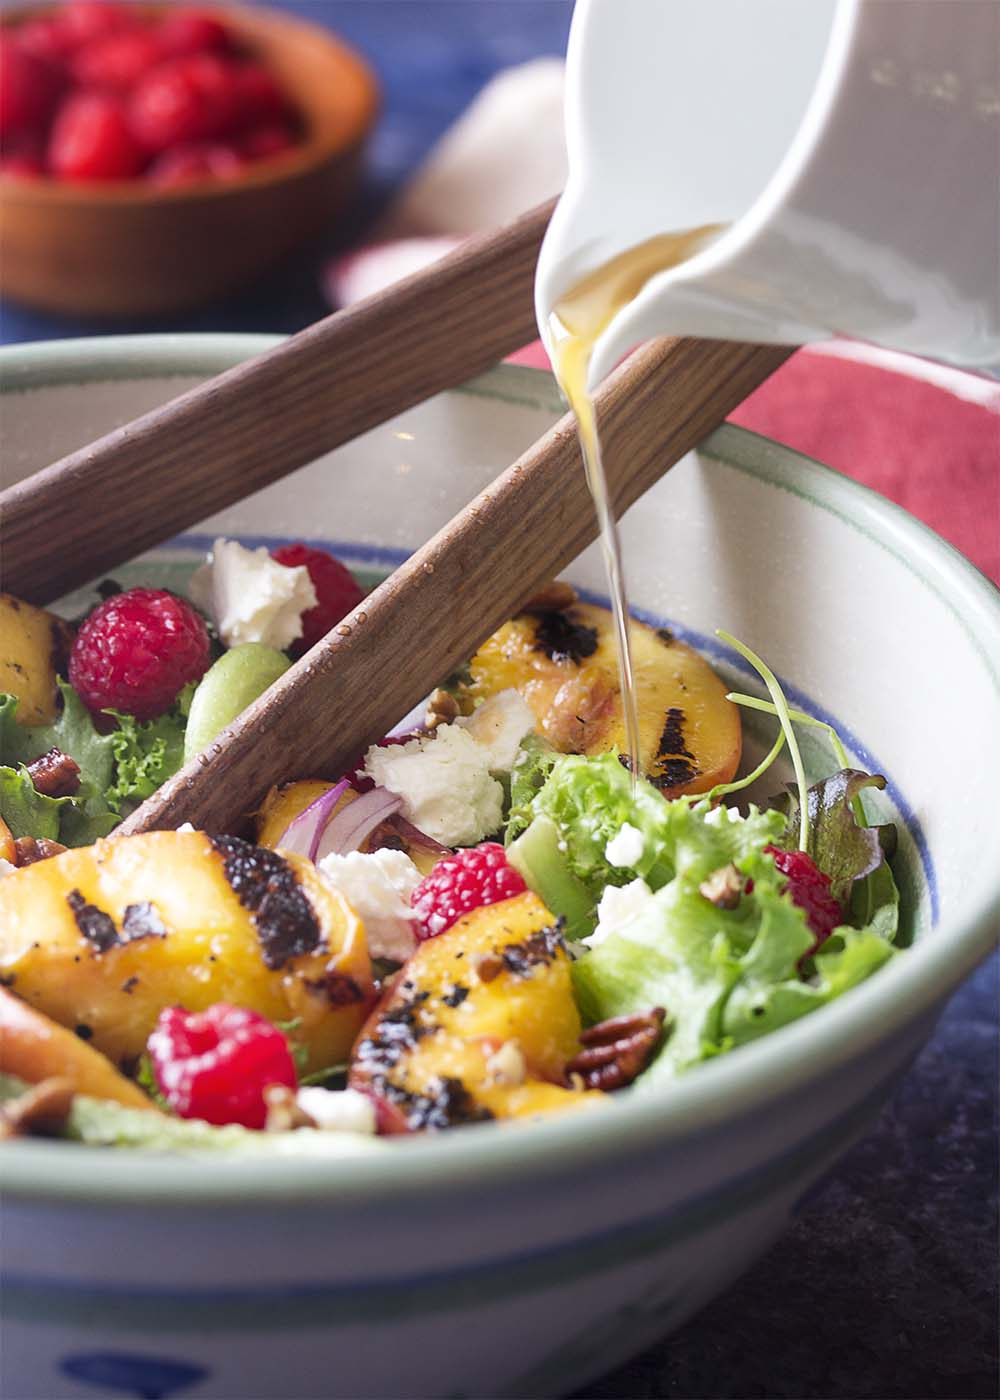 Pouring maple vinaigrette dressing into a serving bowl of grilled peach summer salad.